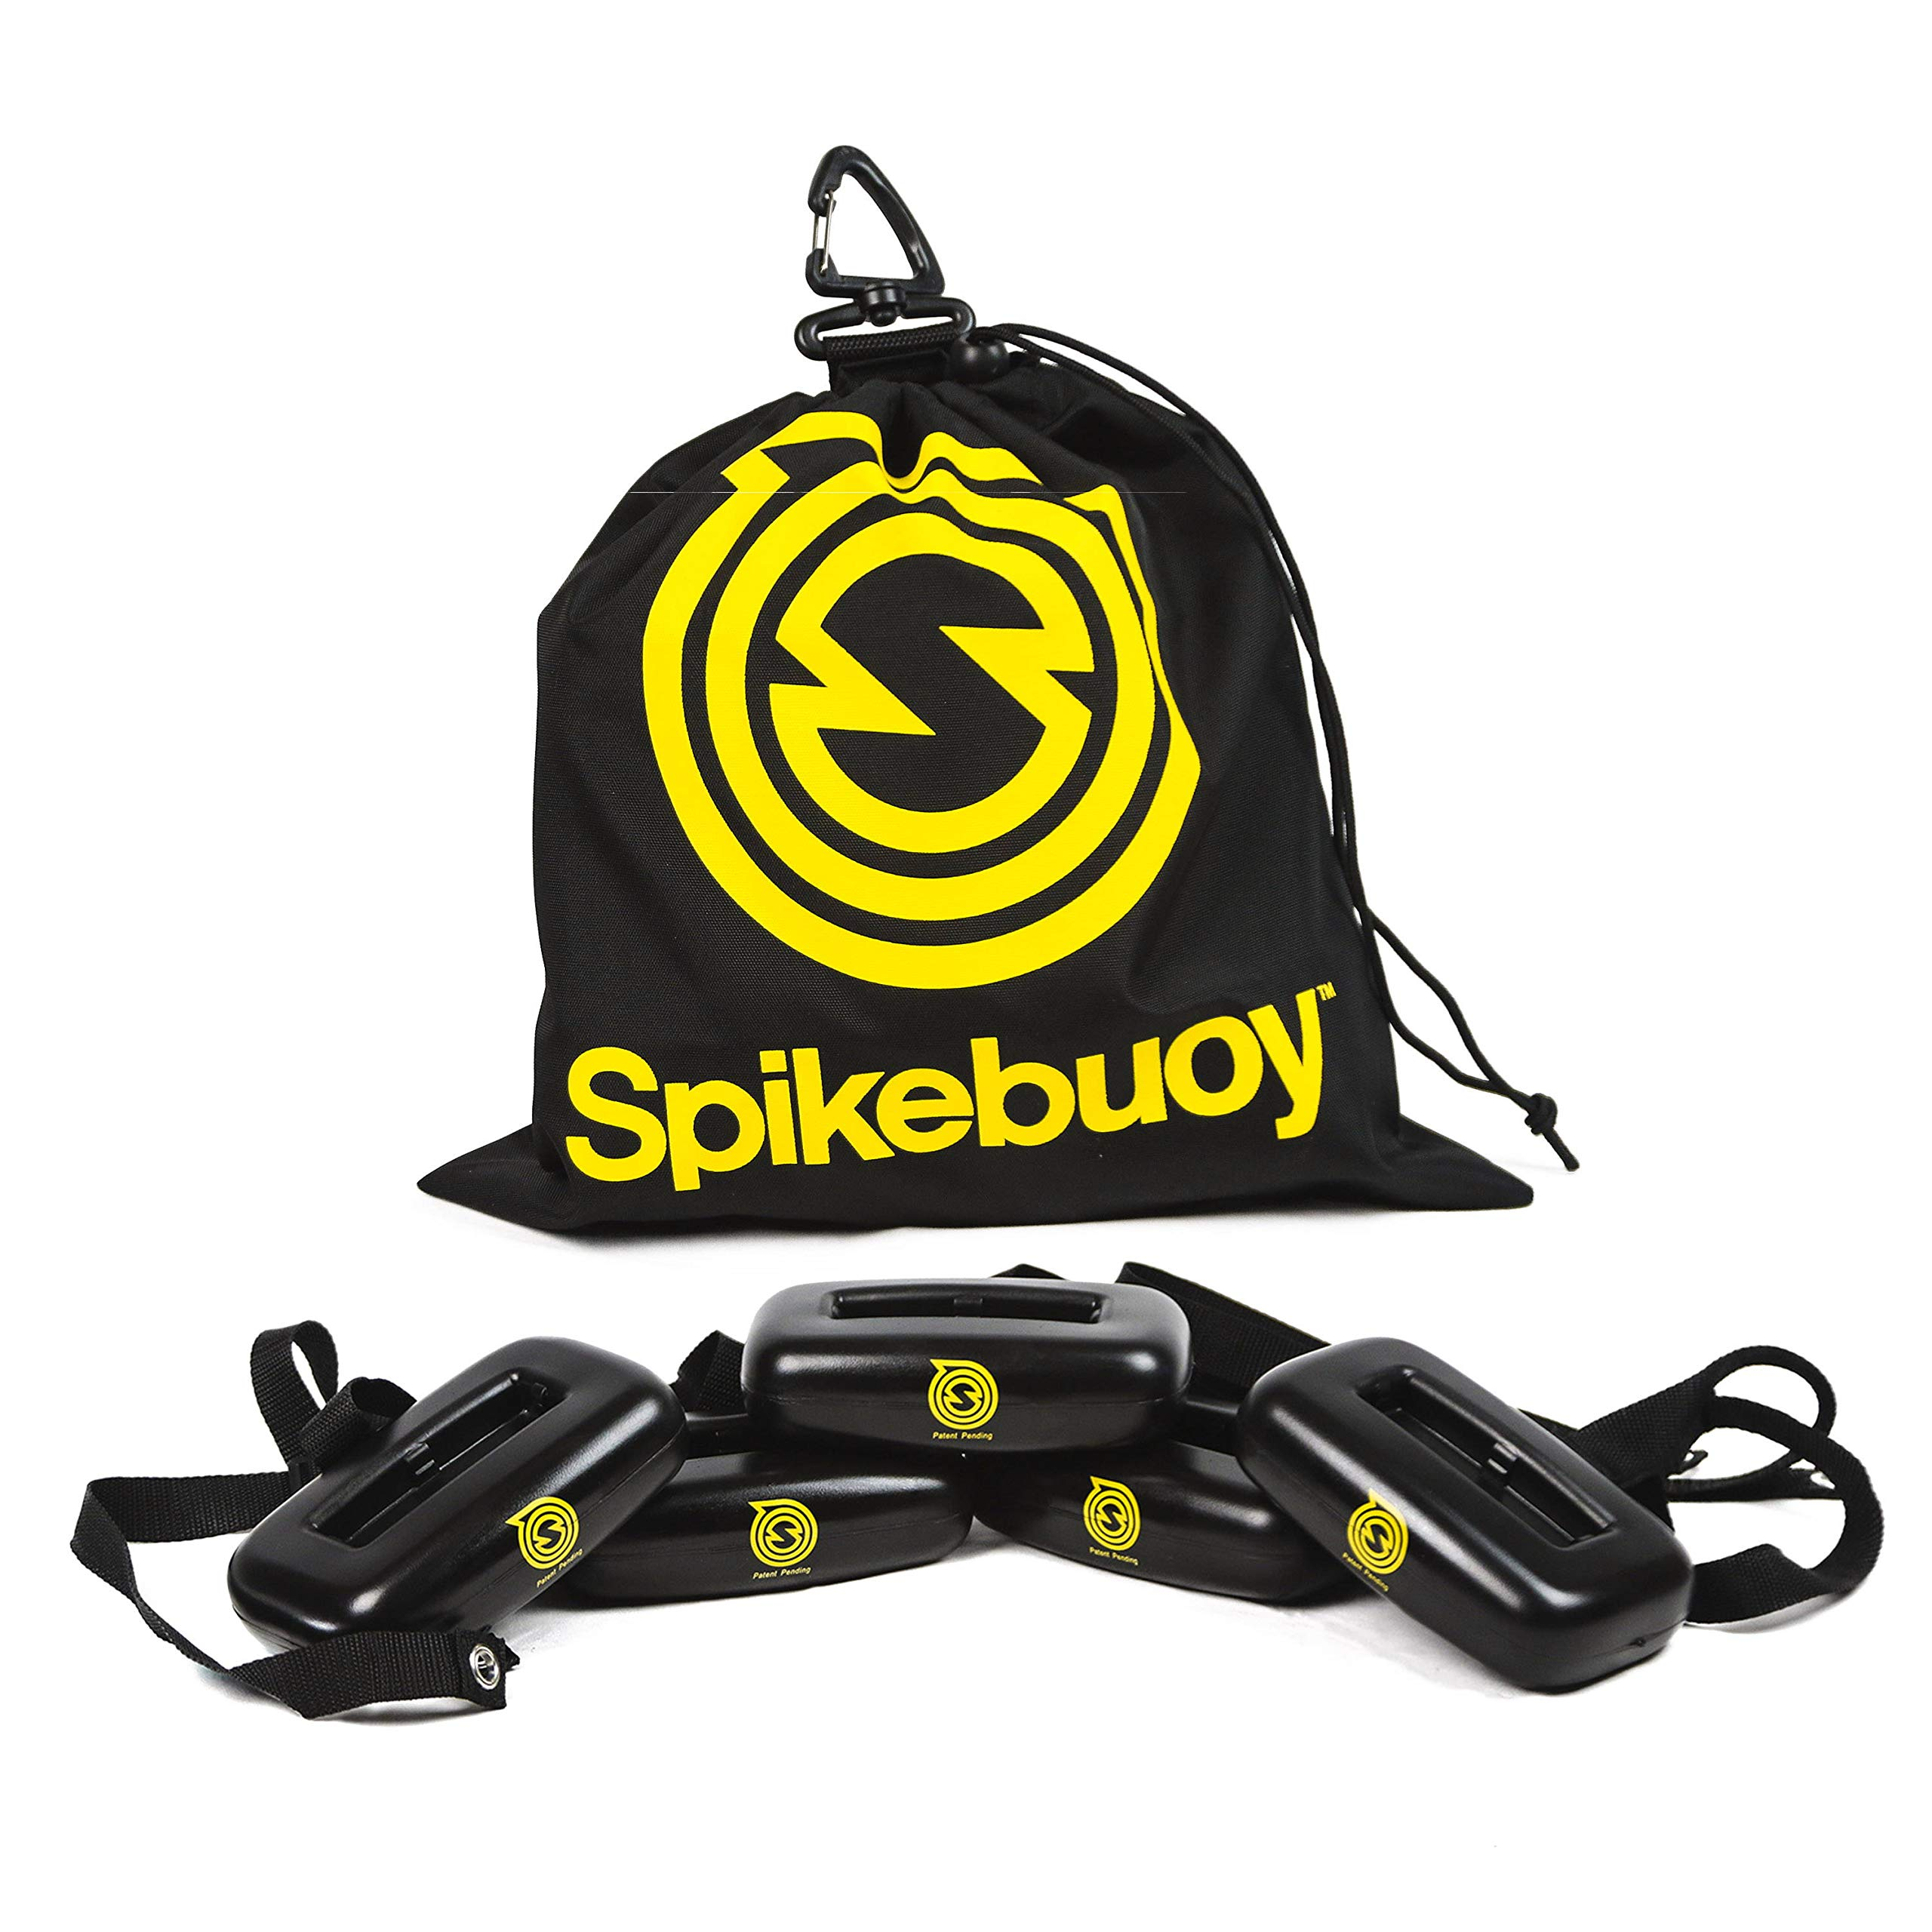 Spikeball Spikebuoy on Water Accessory – Play in The Pool or at The Beach – Use with Standard and Pro Sets – Includes Leg Floats and Anchor Bag